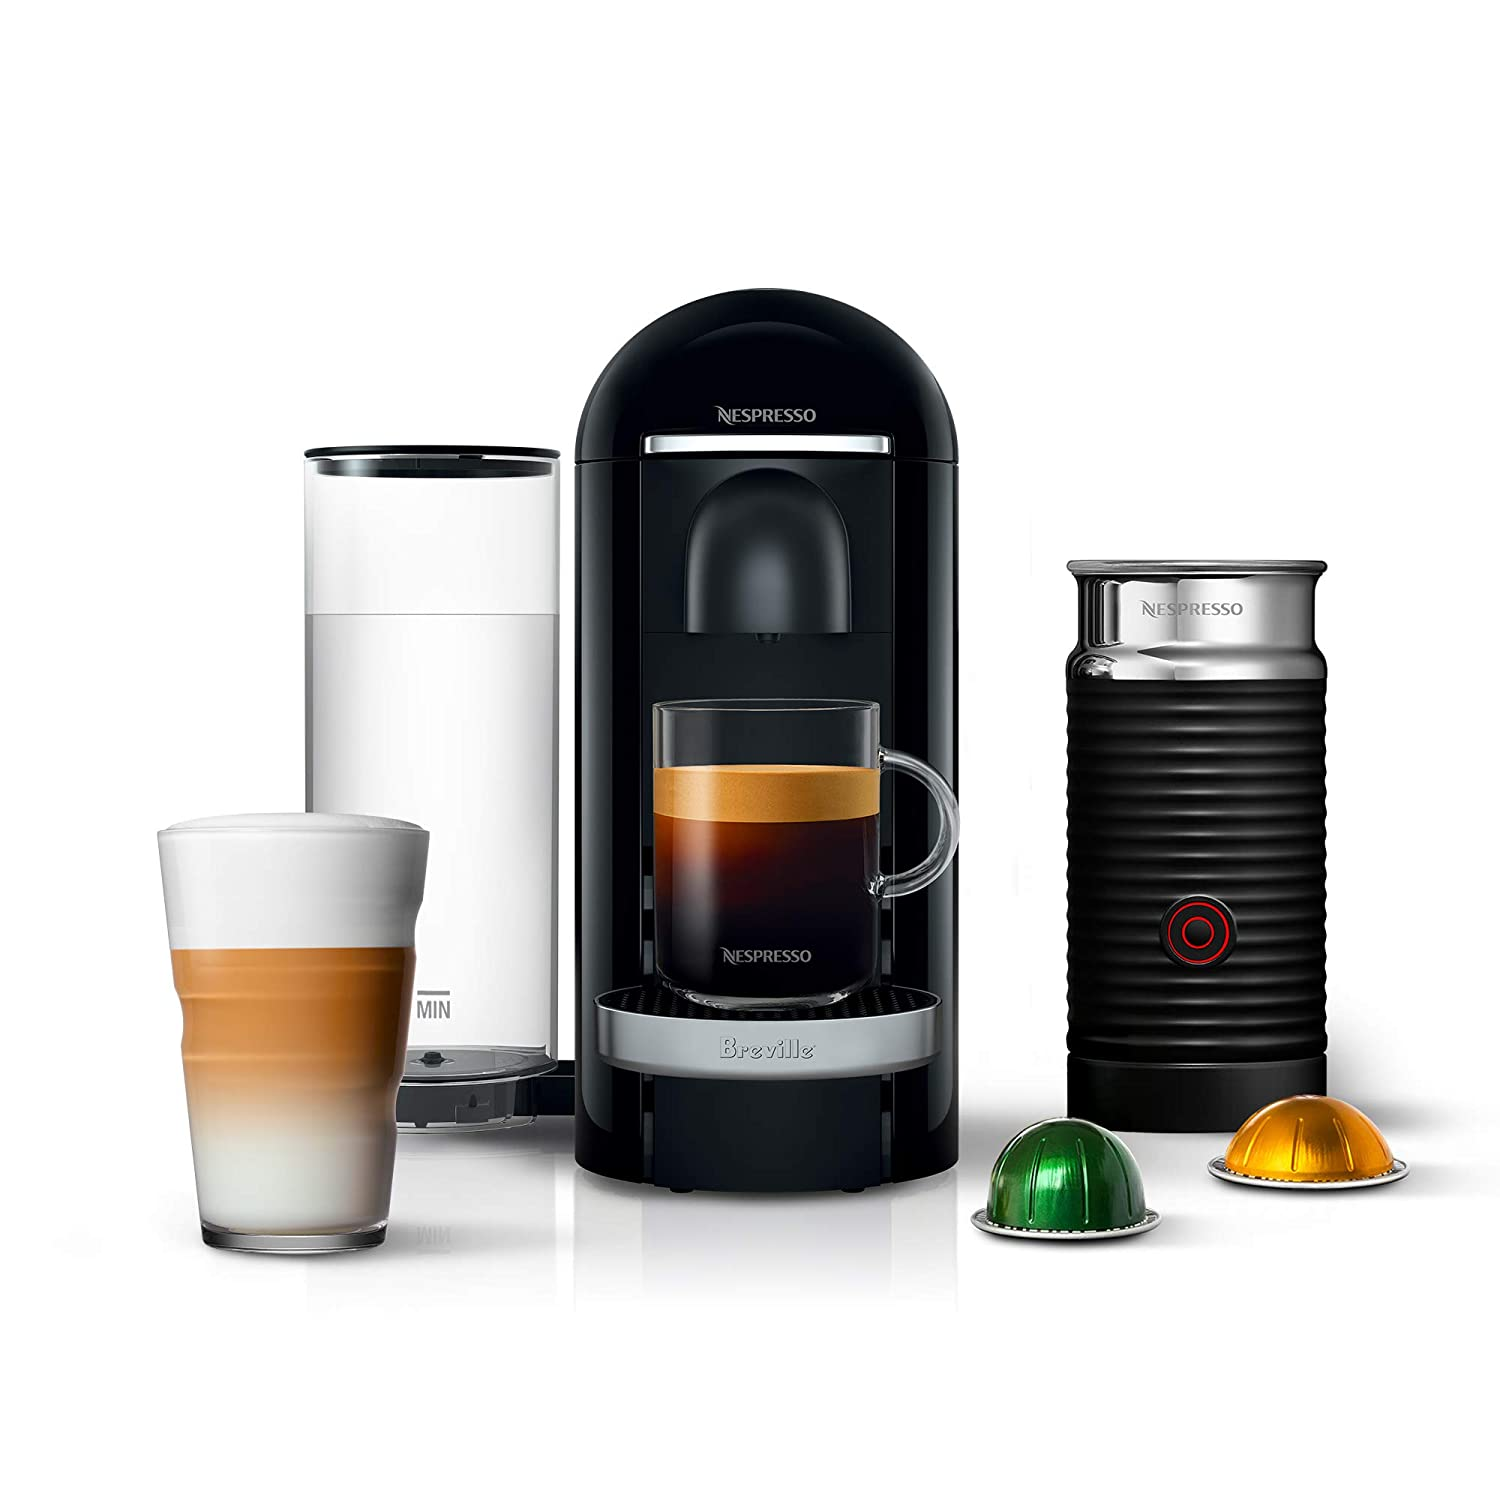 Buy Nespresso VertuoPlus Deluxe Coffee and Espresso Machine Bundle with  Aeroccino Milk Frother by Breville, Black Online at Low Prices in India -  Amazon.in